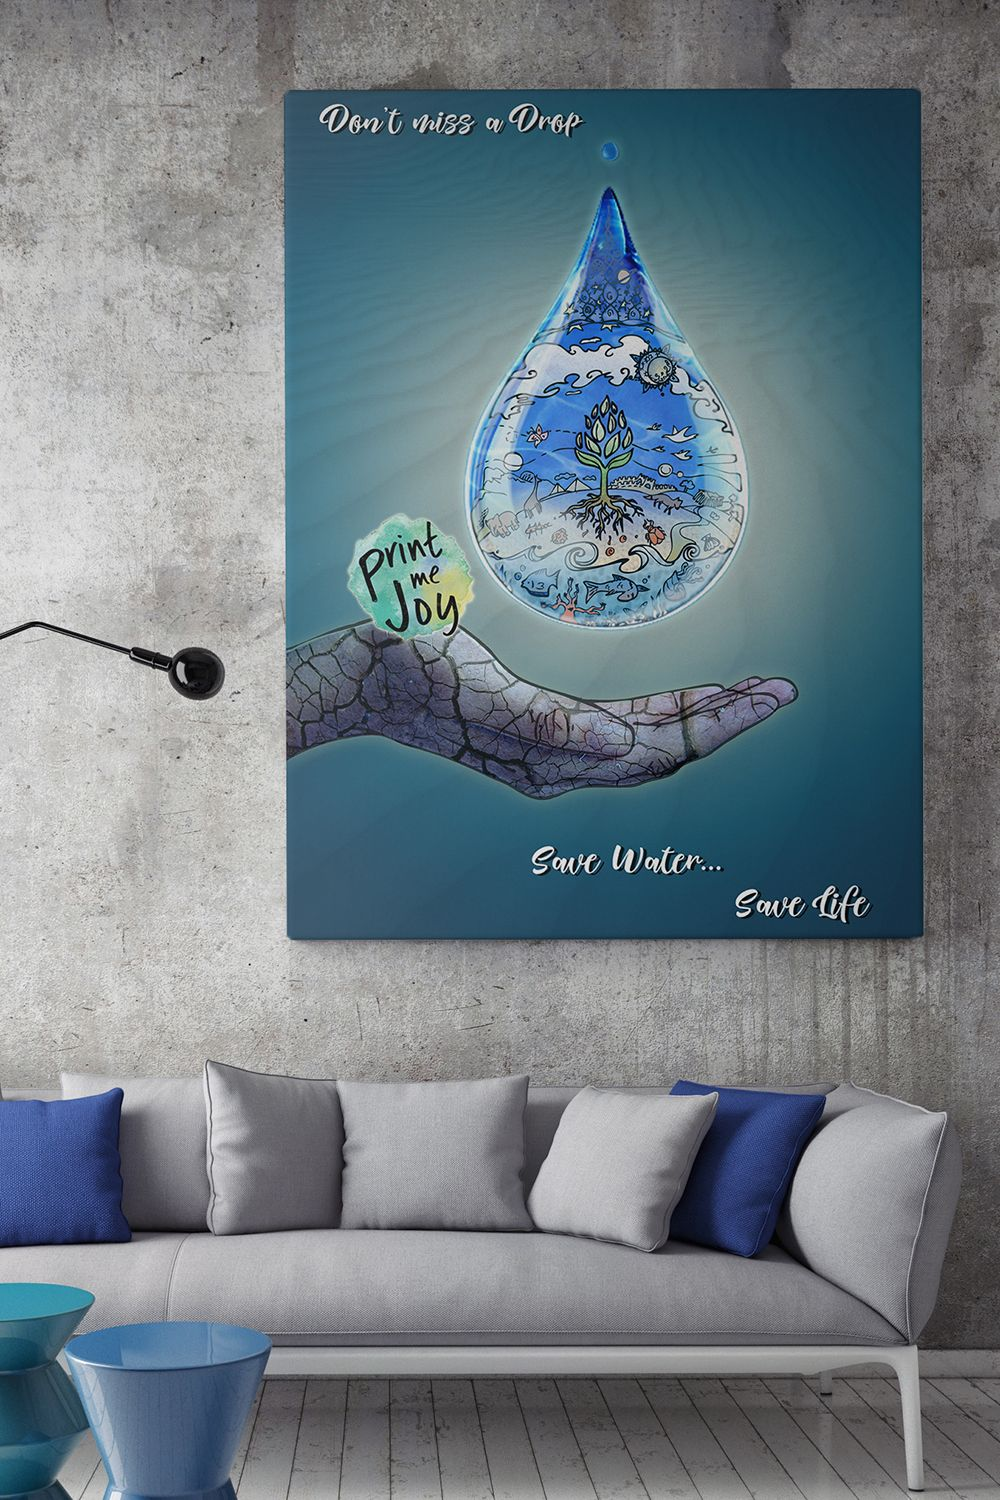 Water Wall Art Drop Poster Water Save Save Life Desert Ecology Wall Art Instant Download Printable Wall Art Kitchen Decor Bathroom Decor Wall Art Instant Download Ecology Art Printable Wall Art